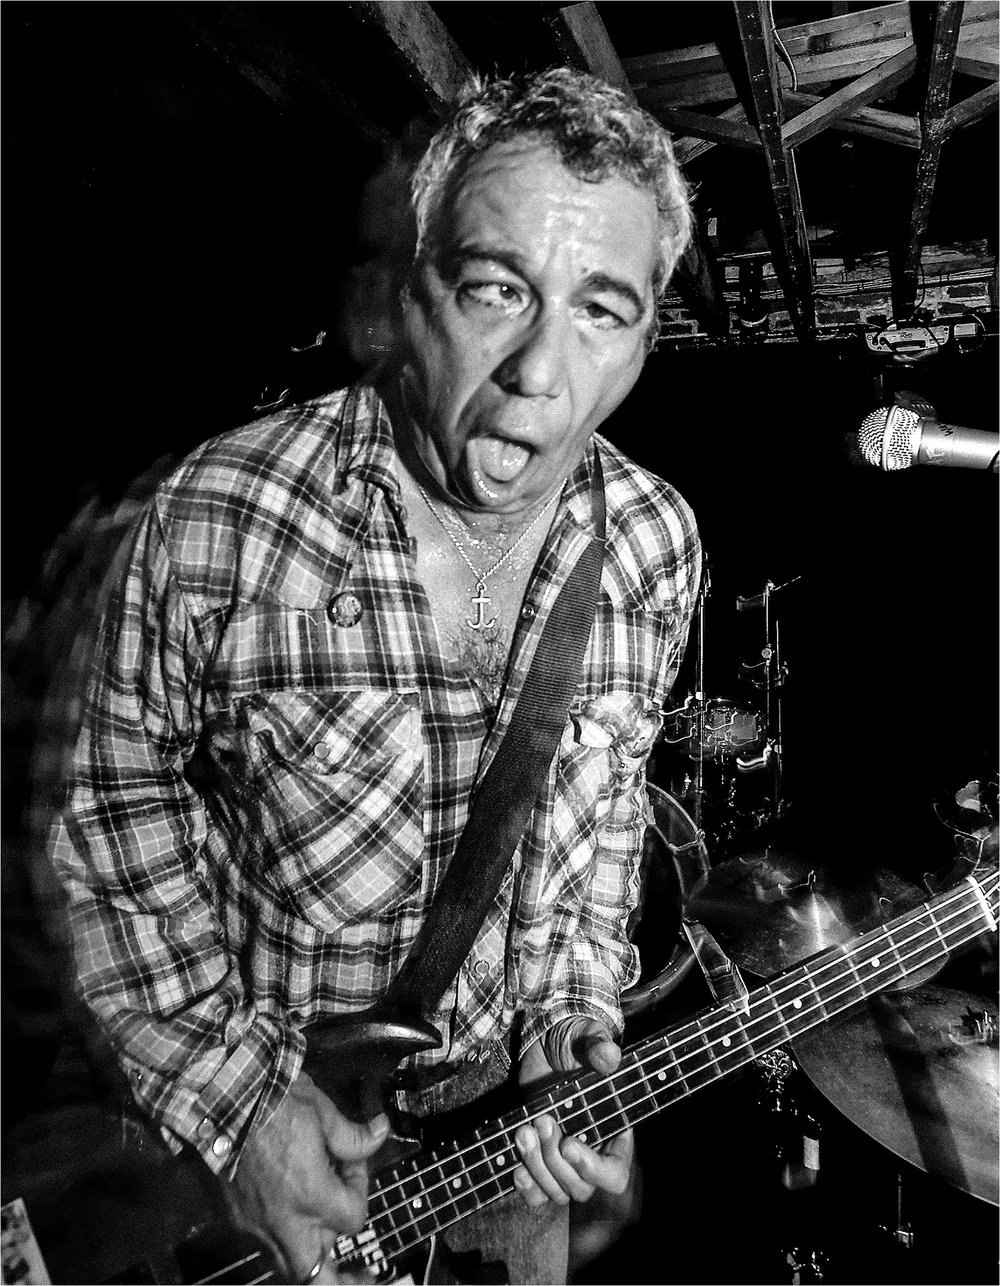 Mike Watt, Missingmen